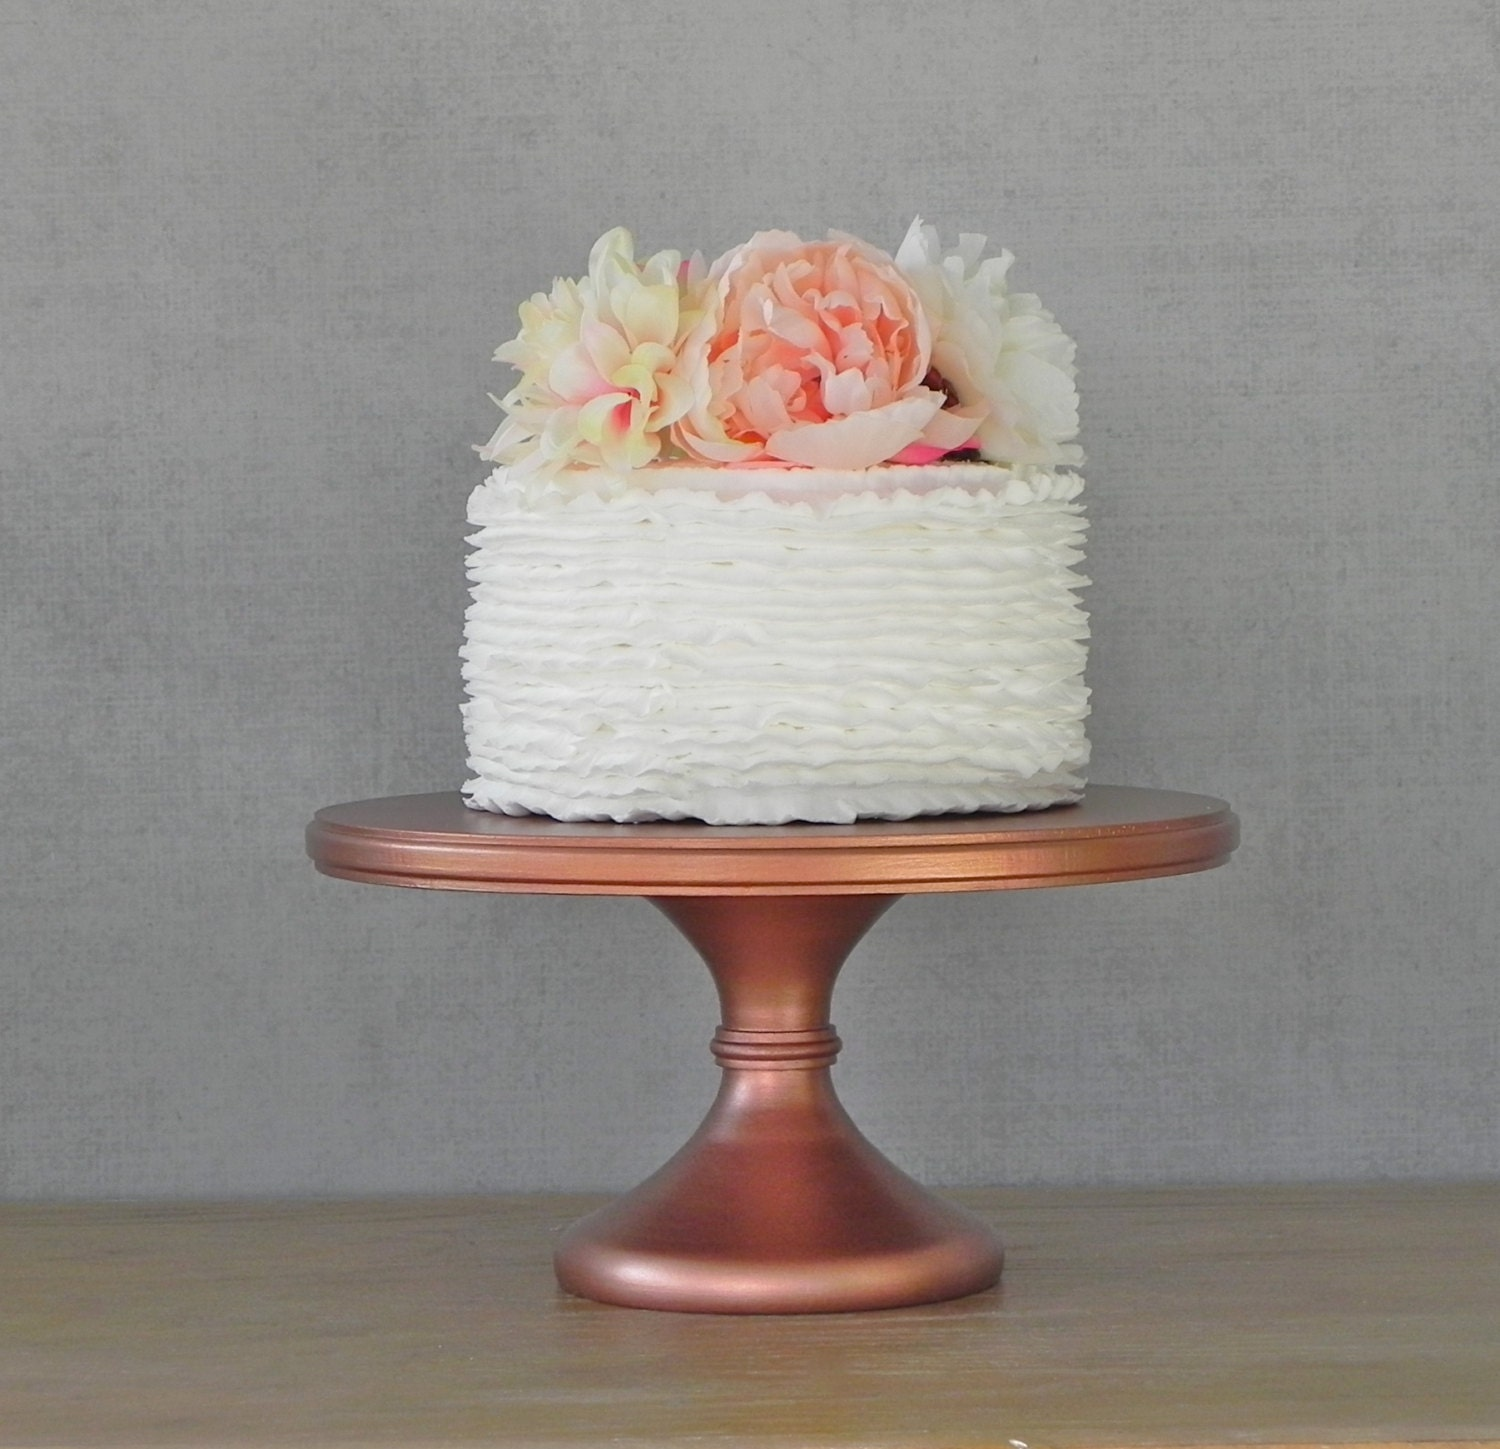 Decorative Cake Stands 18 Wedding Cake Stand Pedestal Cake Stand Rose Gold